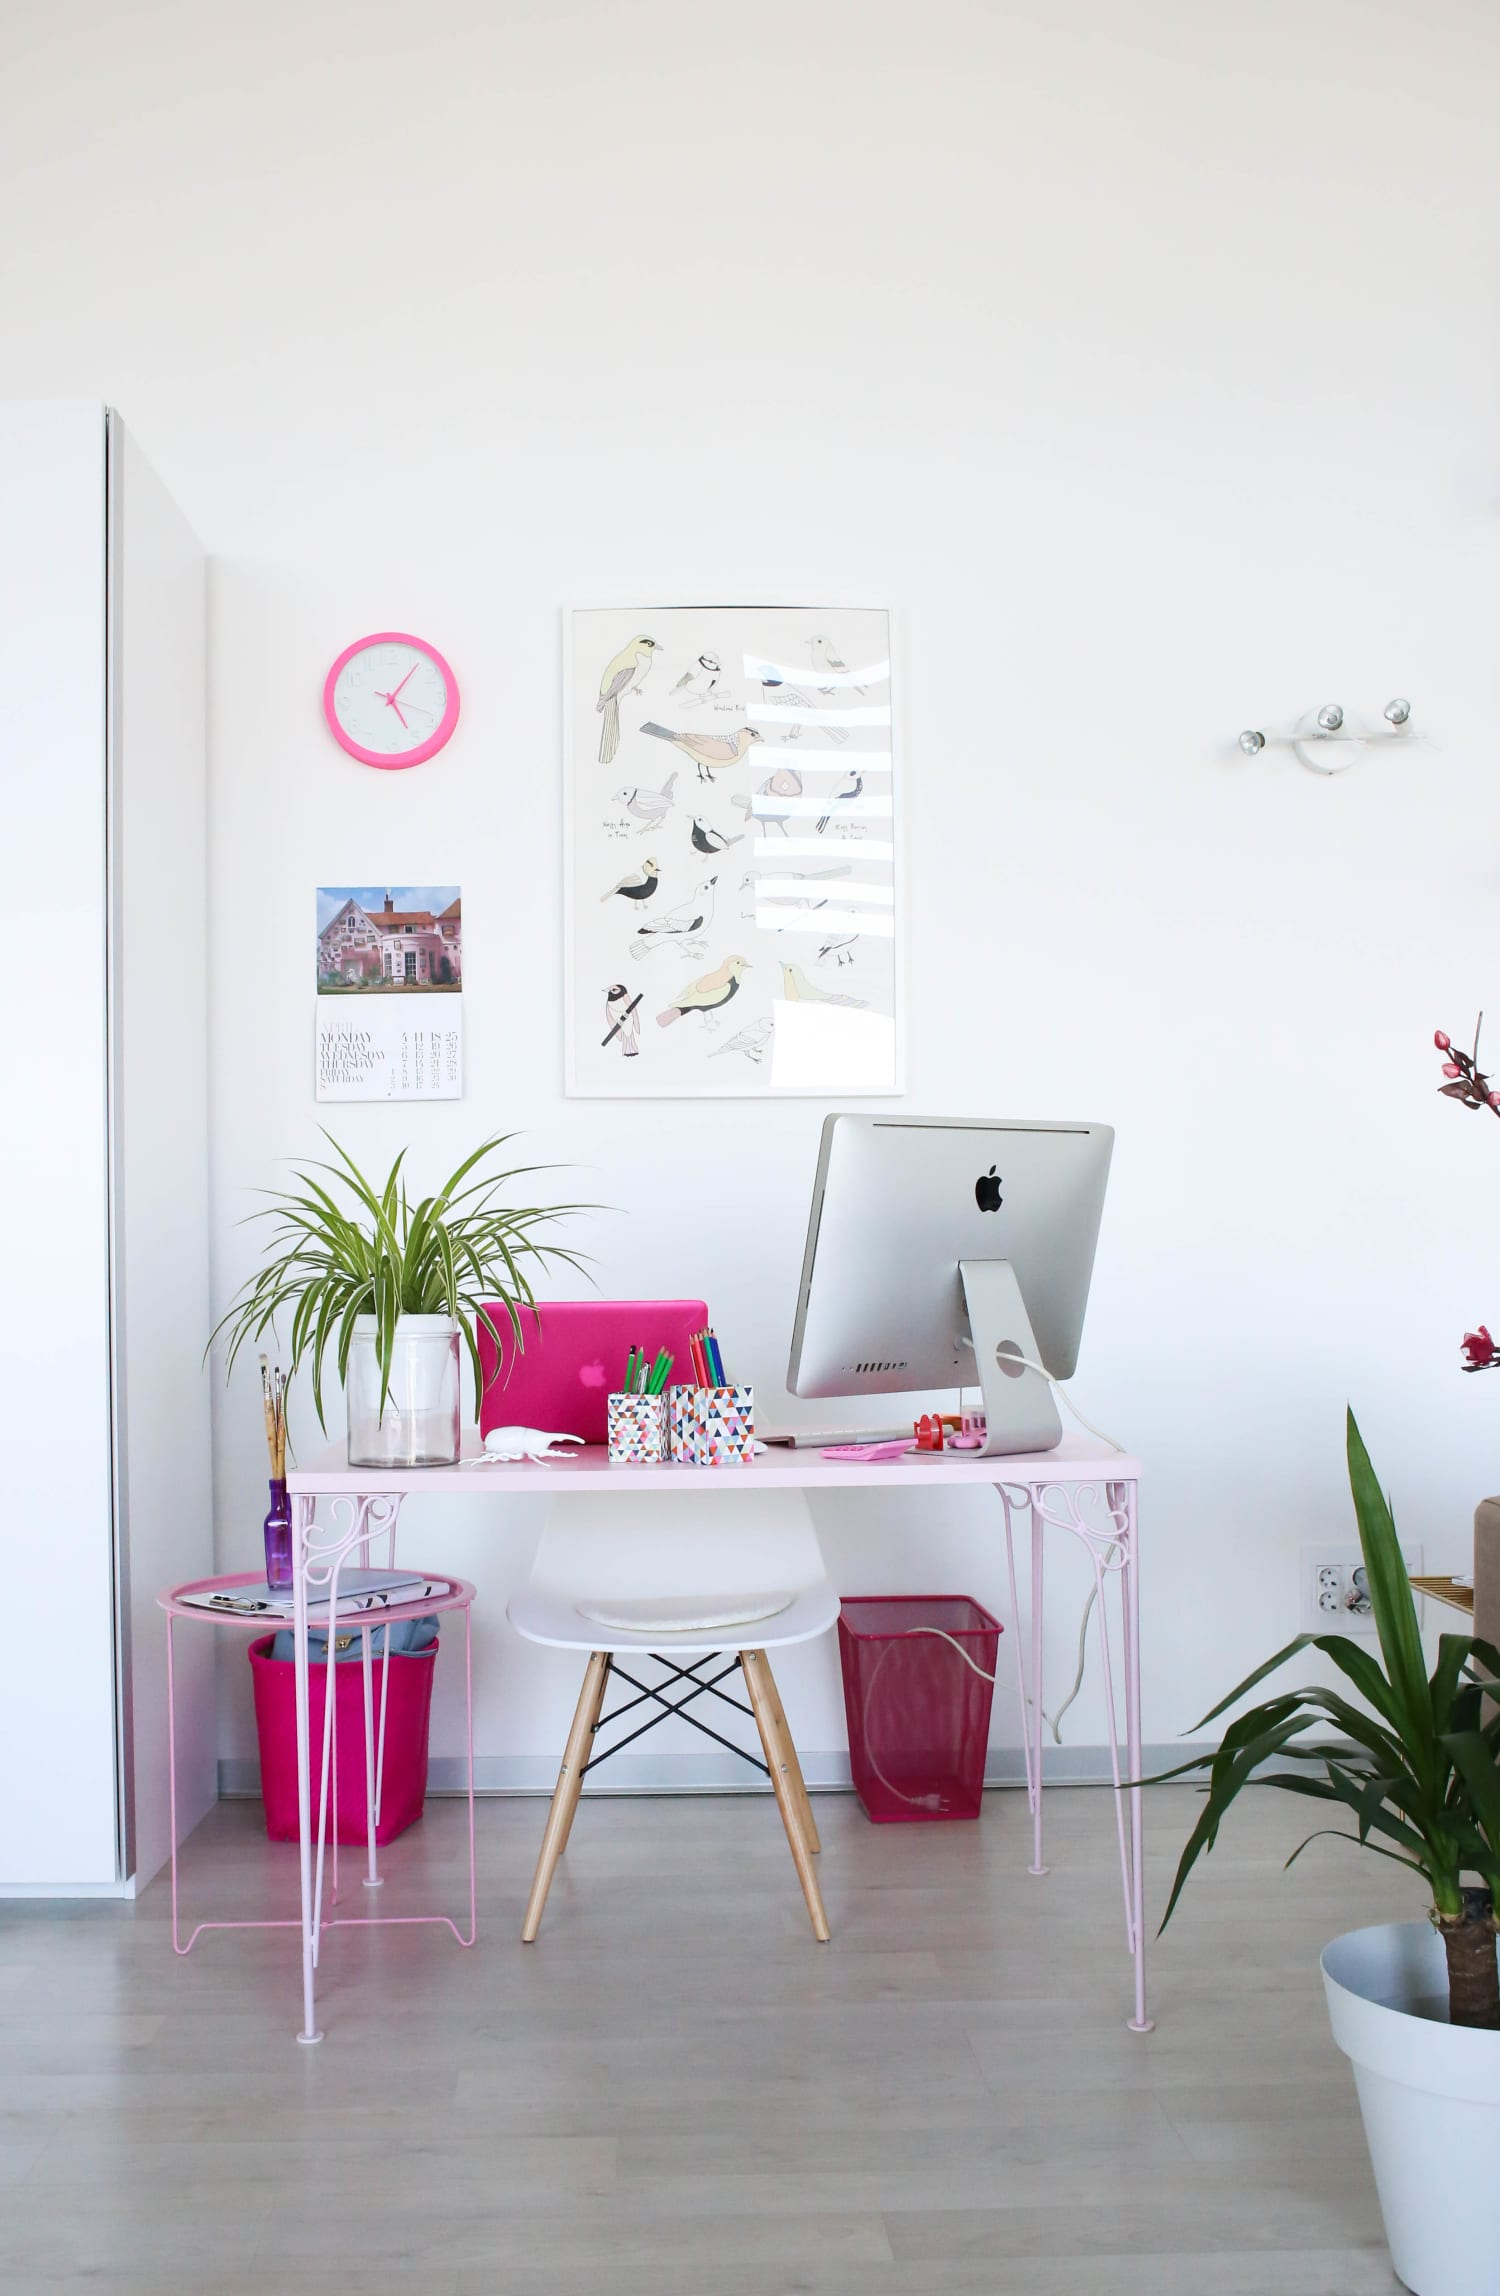 How to Create Your Own Wallpaper + Customize Fabric   Apartment Therapy